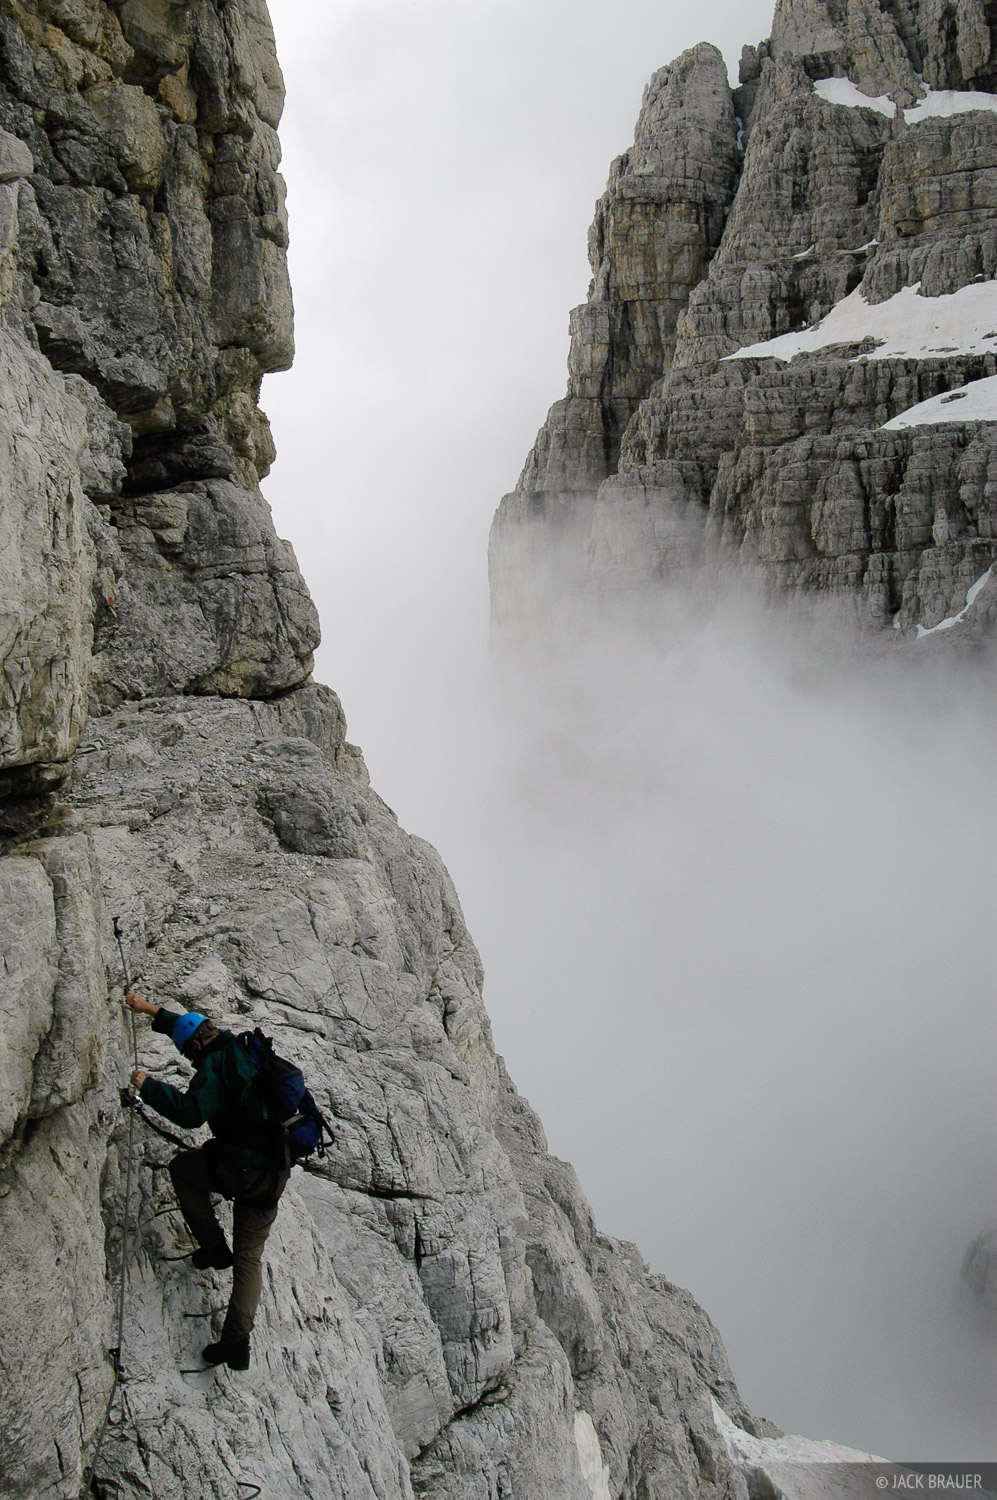 Brenta group, via ferrata, climbing, Madonna di Campiglio, Dolomites, Italy, Alps, photo